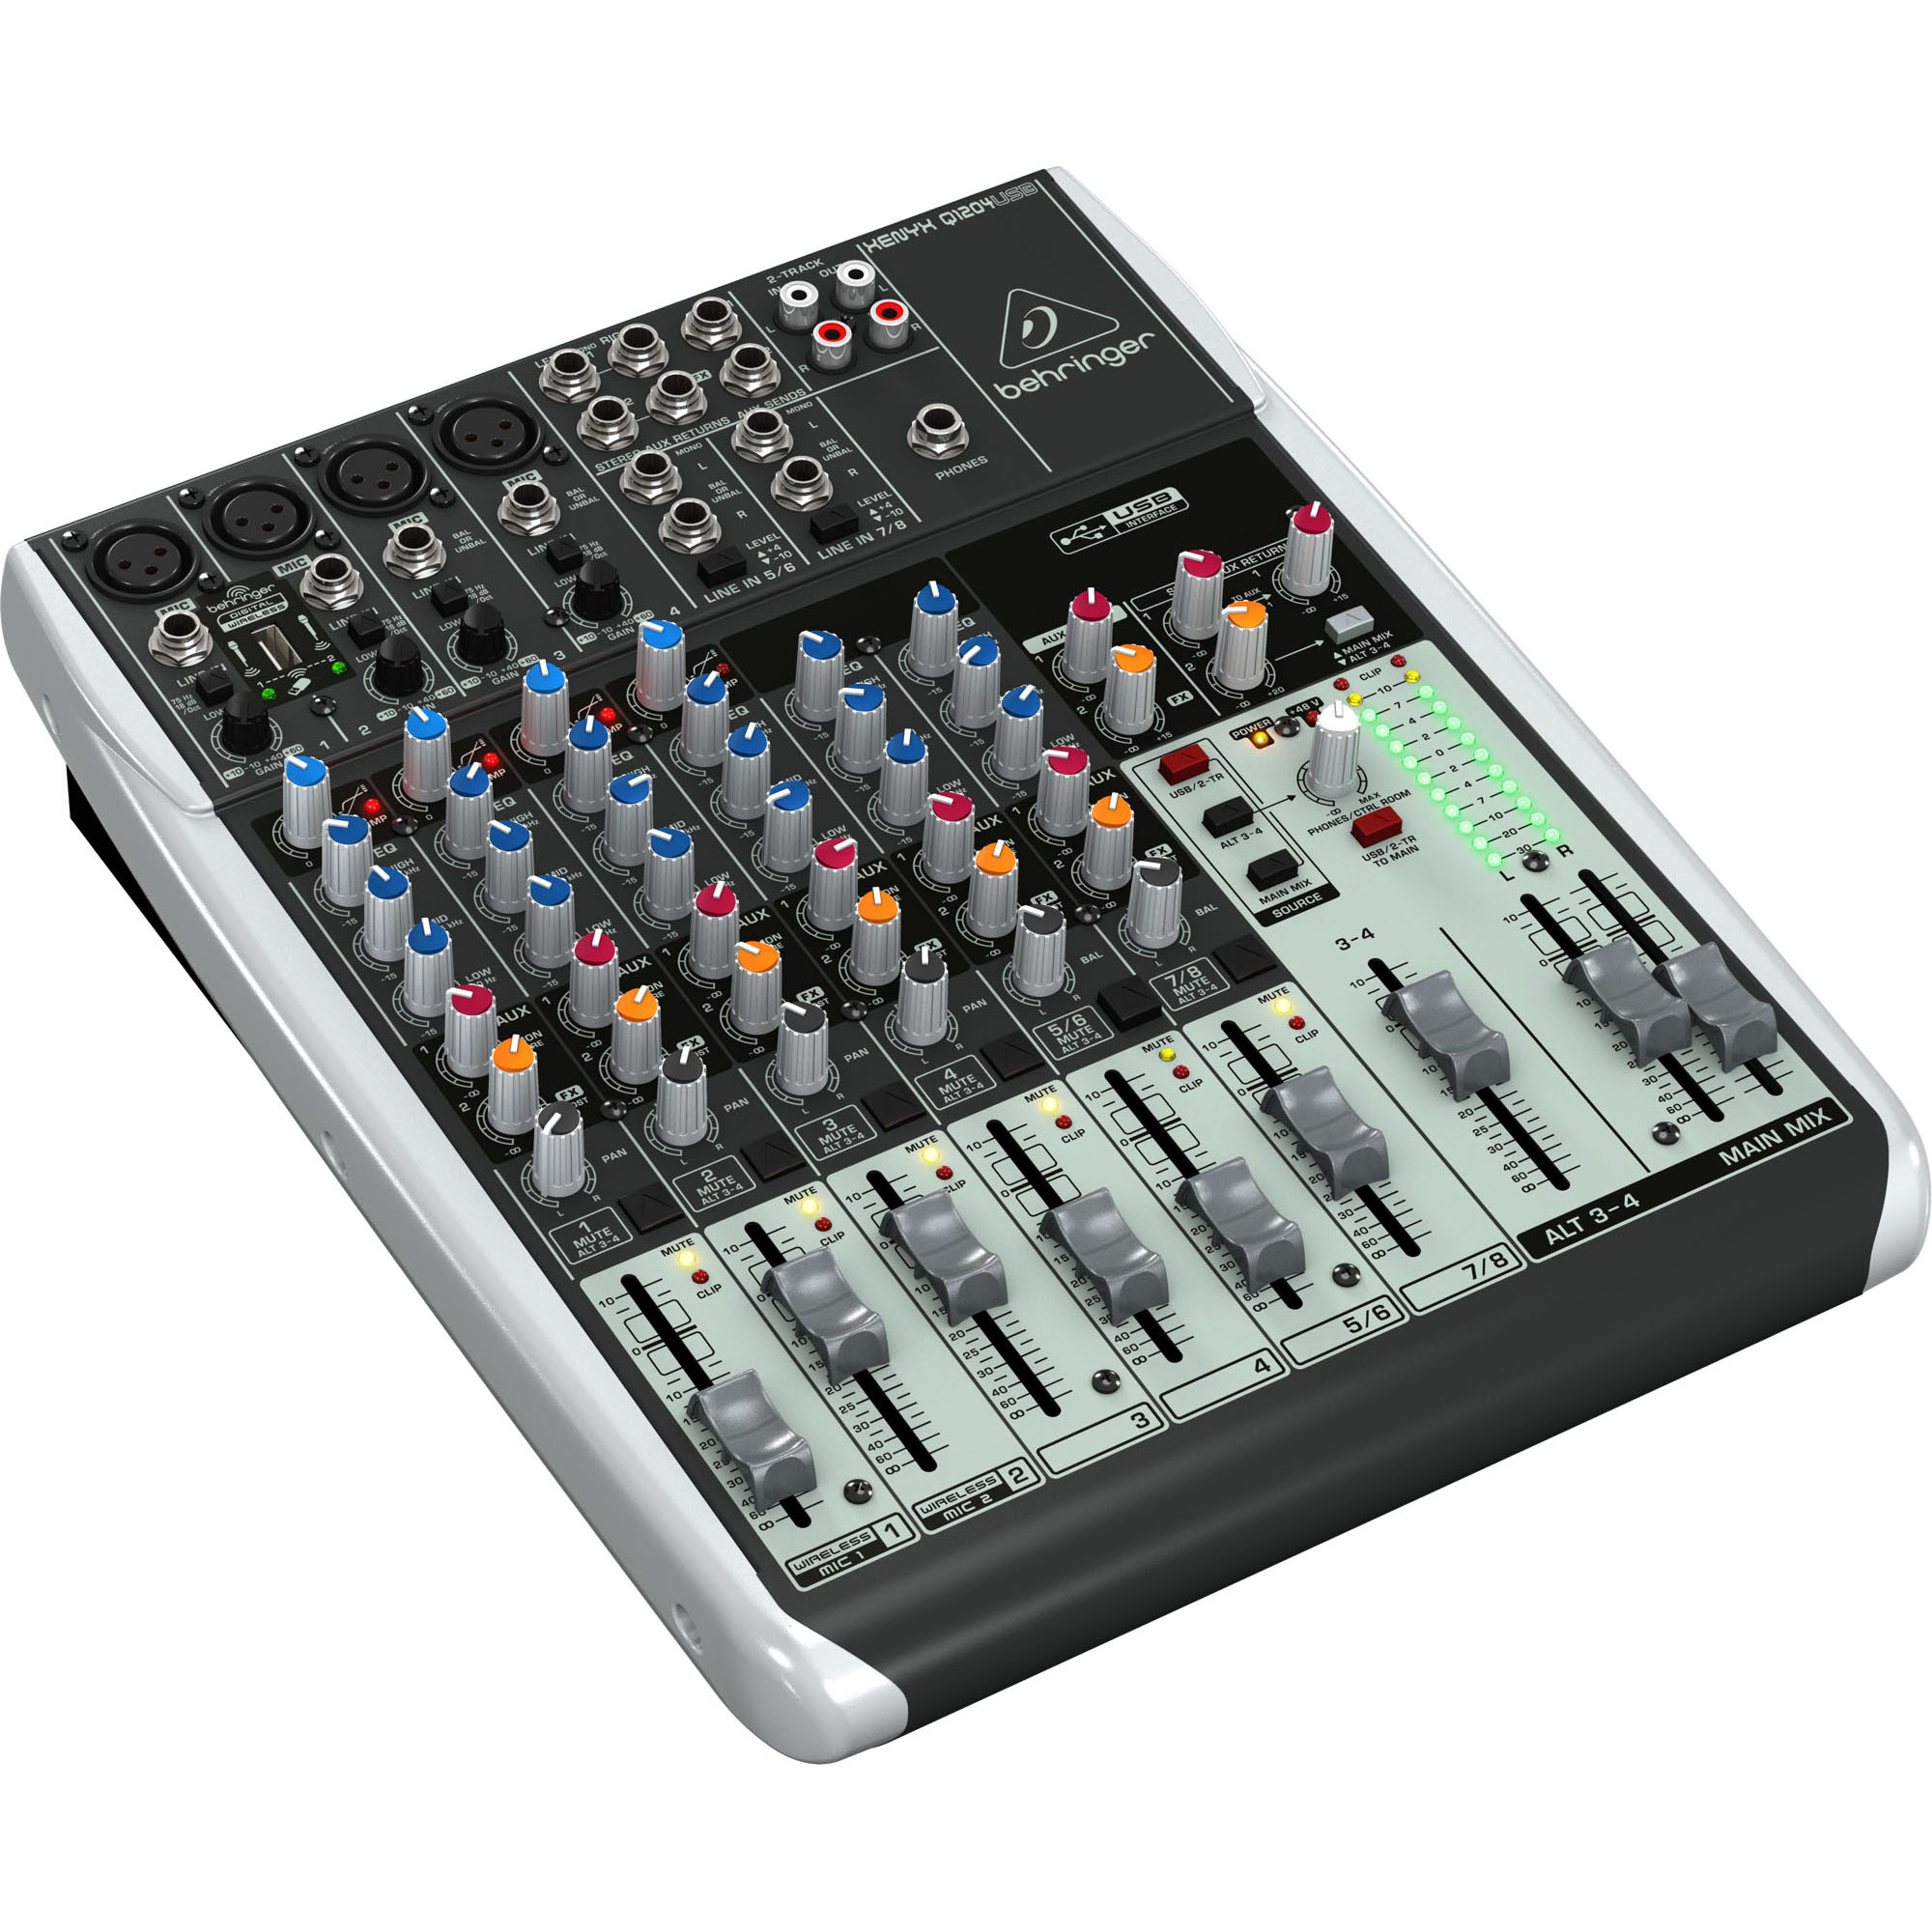 Behringer Q1204USB 12-Input 2/2-Bus USB Audio Interface Mixer w/ XENYX Mic Preamps, Compressors & Wireless Options